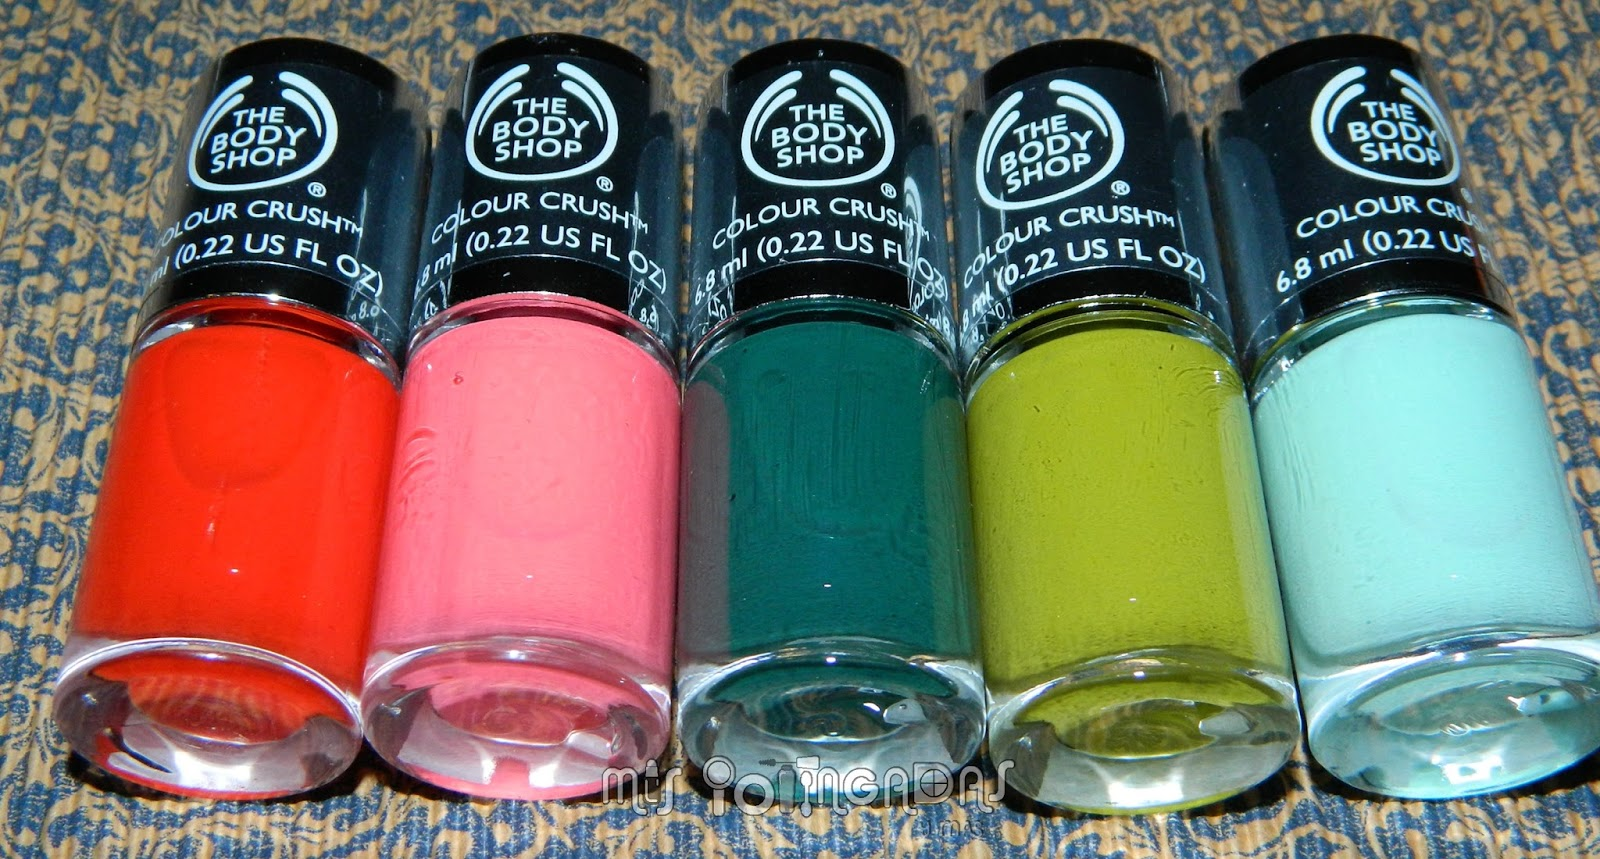 MIS POTINGADAS y más: Review | Nail hapiness! en The Body Shop